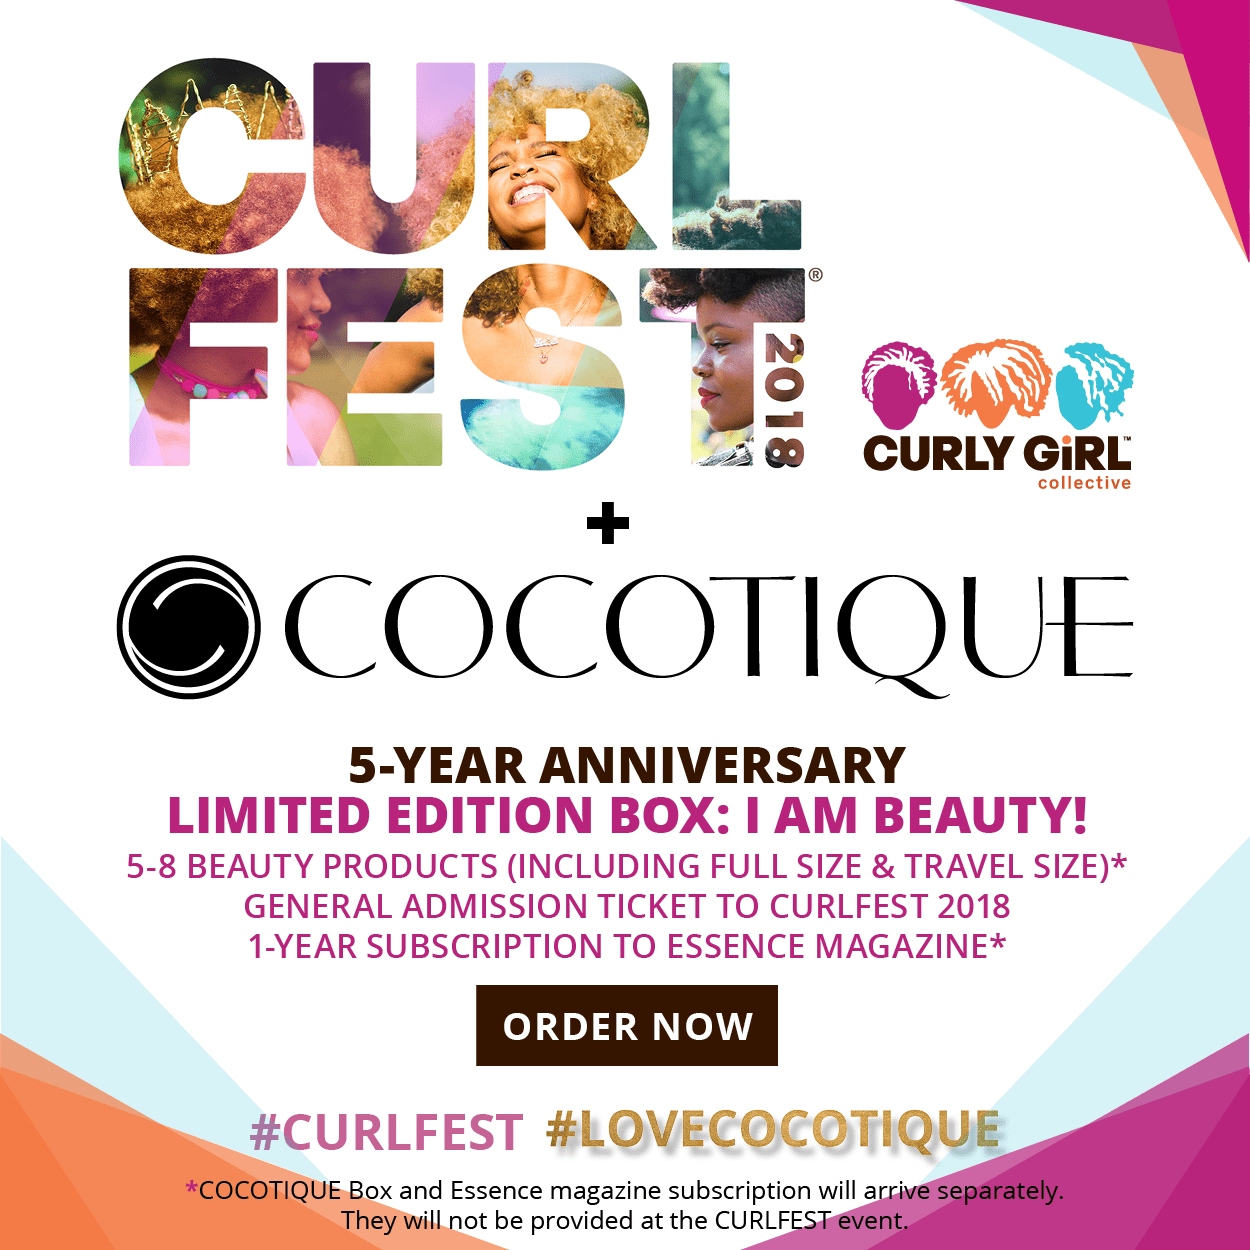 COCOTIQUE x CURLFEST 5-Year Anniversary Limited-Edition Box Available Now + Spoilers!